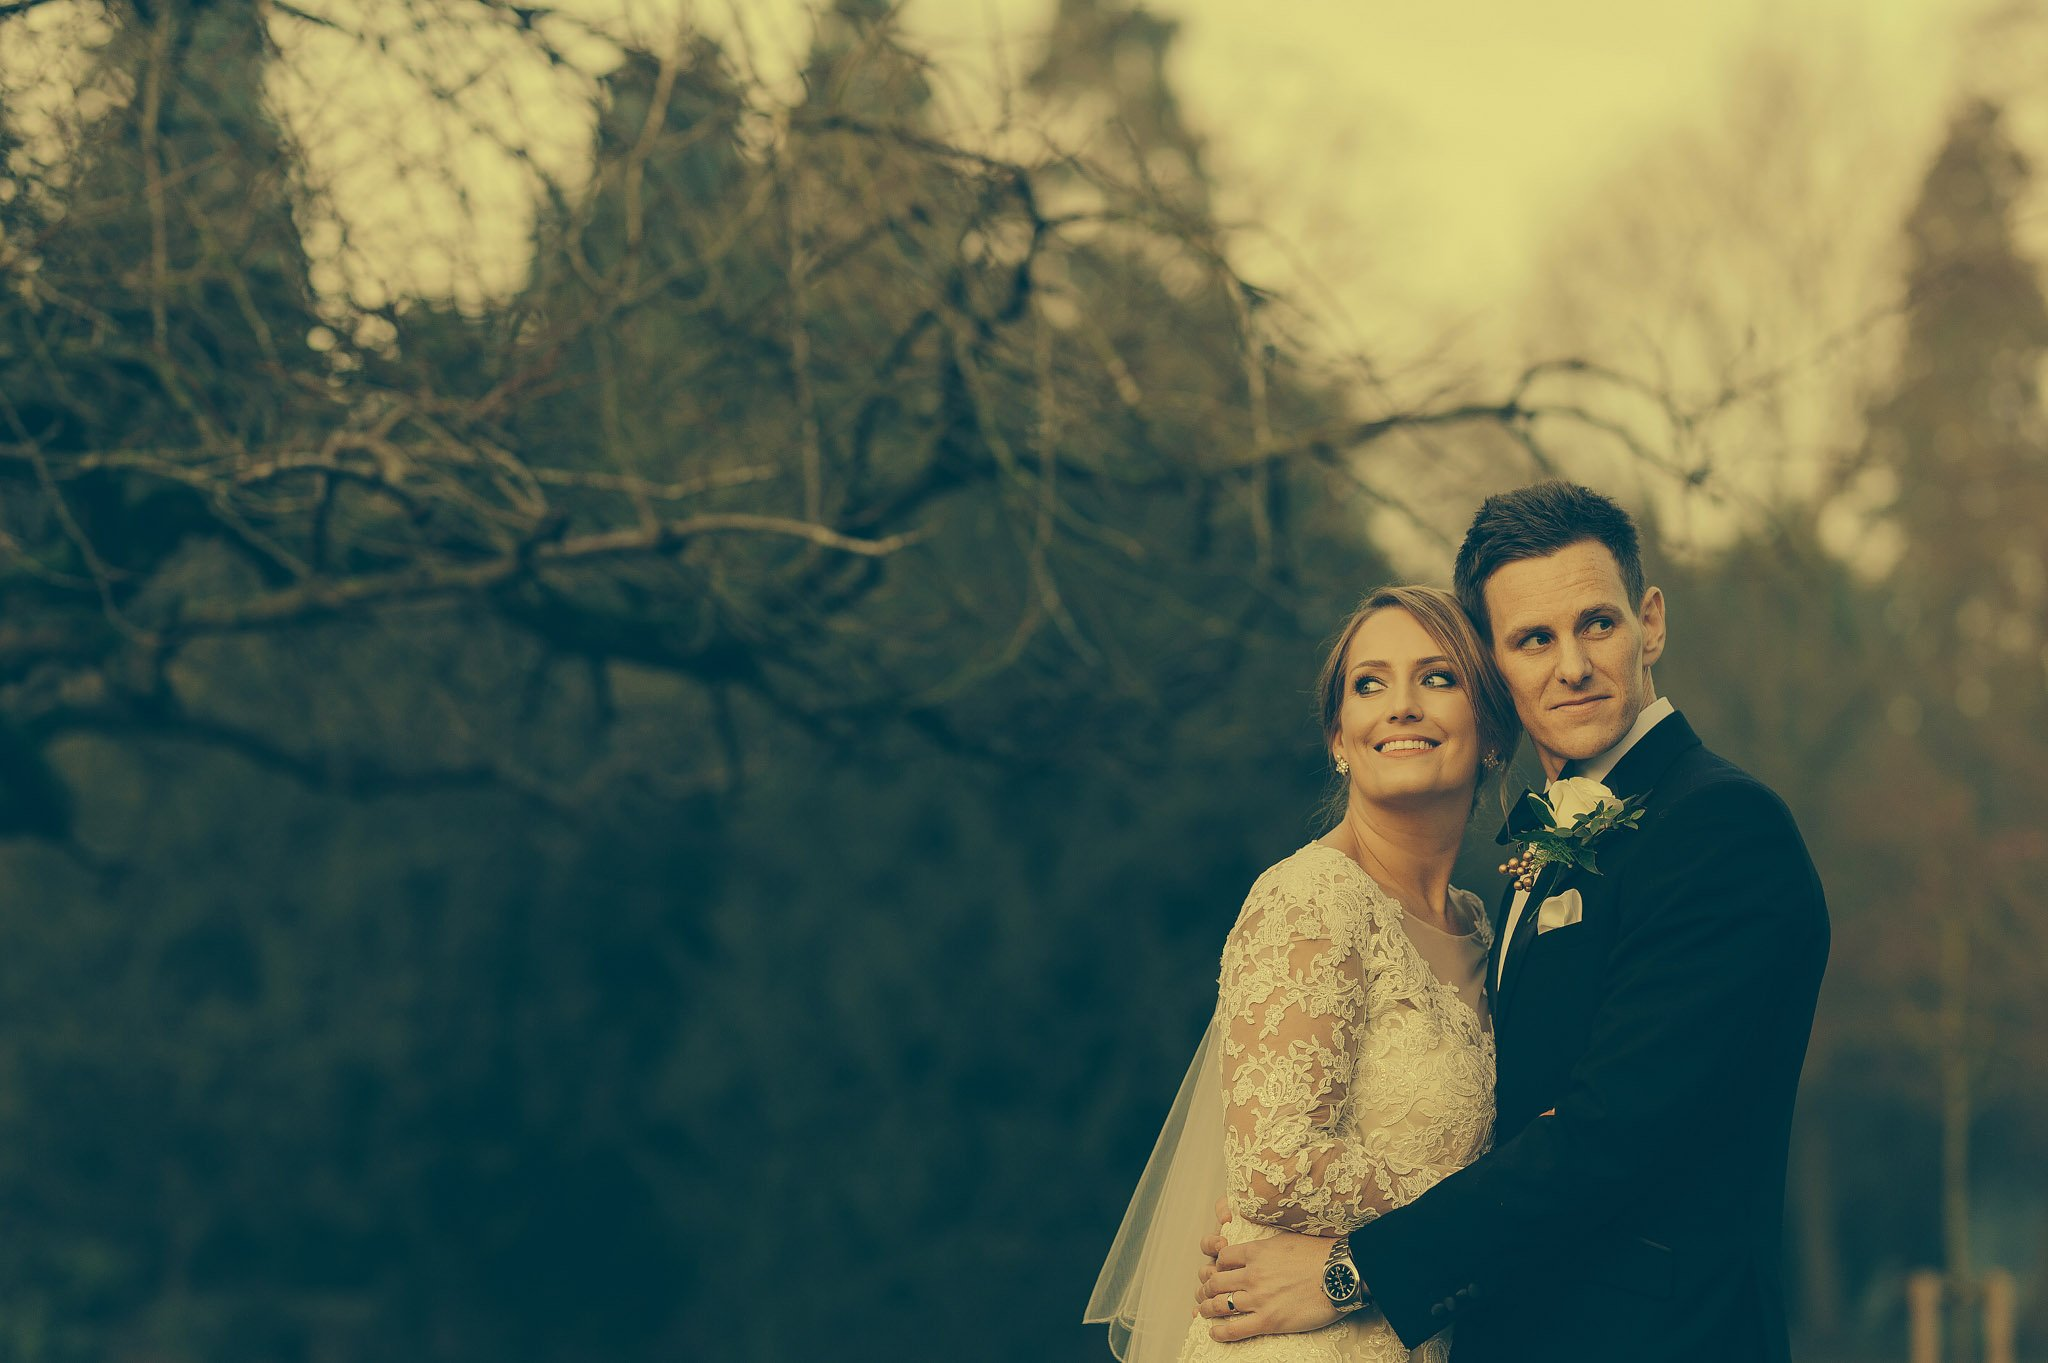 coombe abbey wedding coventry 94 - Coombe Abbey wedding in Coventry, Warwickshire - Sam + Matt